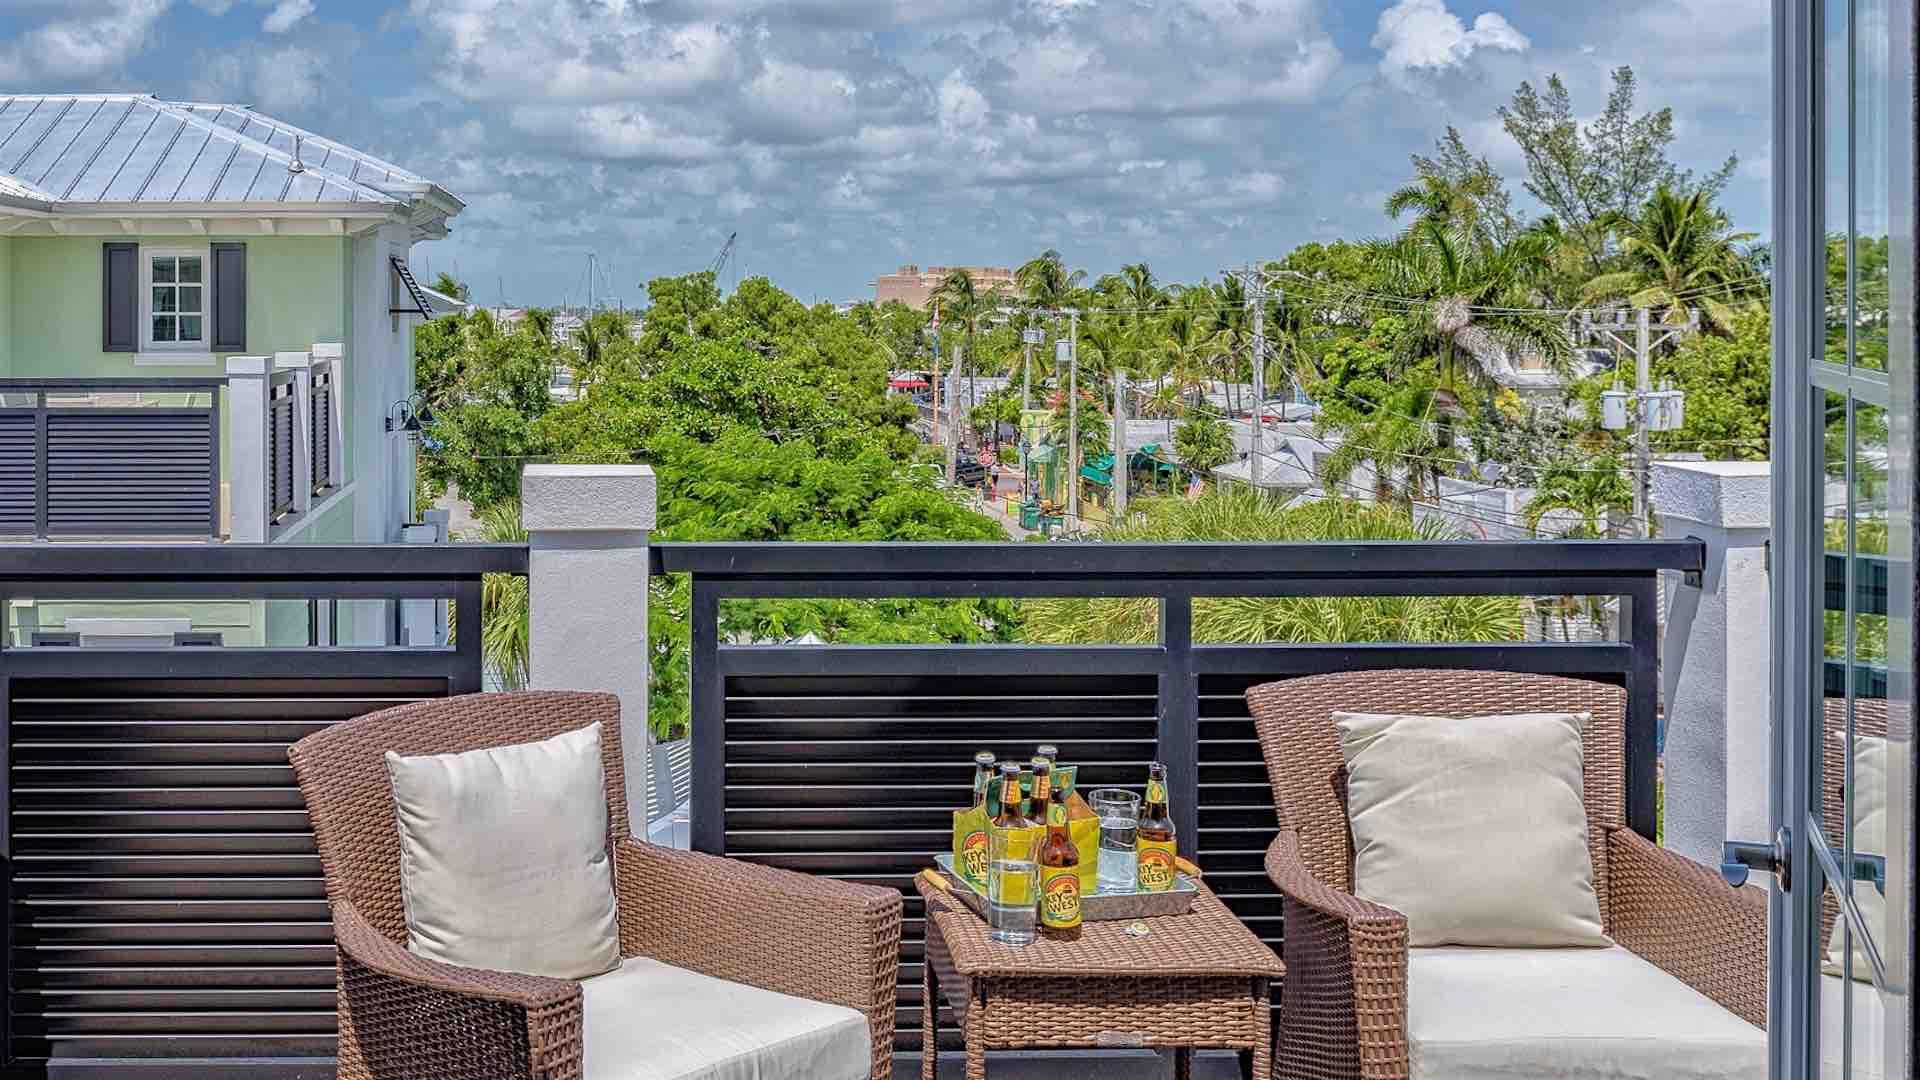 There is a large outdoor terrace with outdoor seating and dining on the fourth floor...